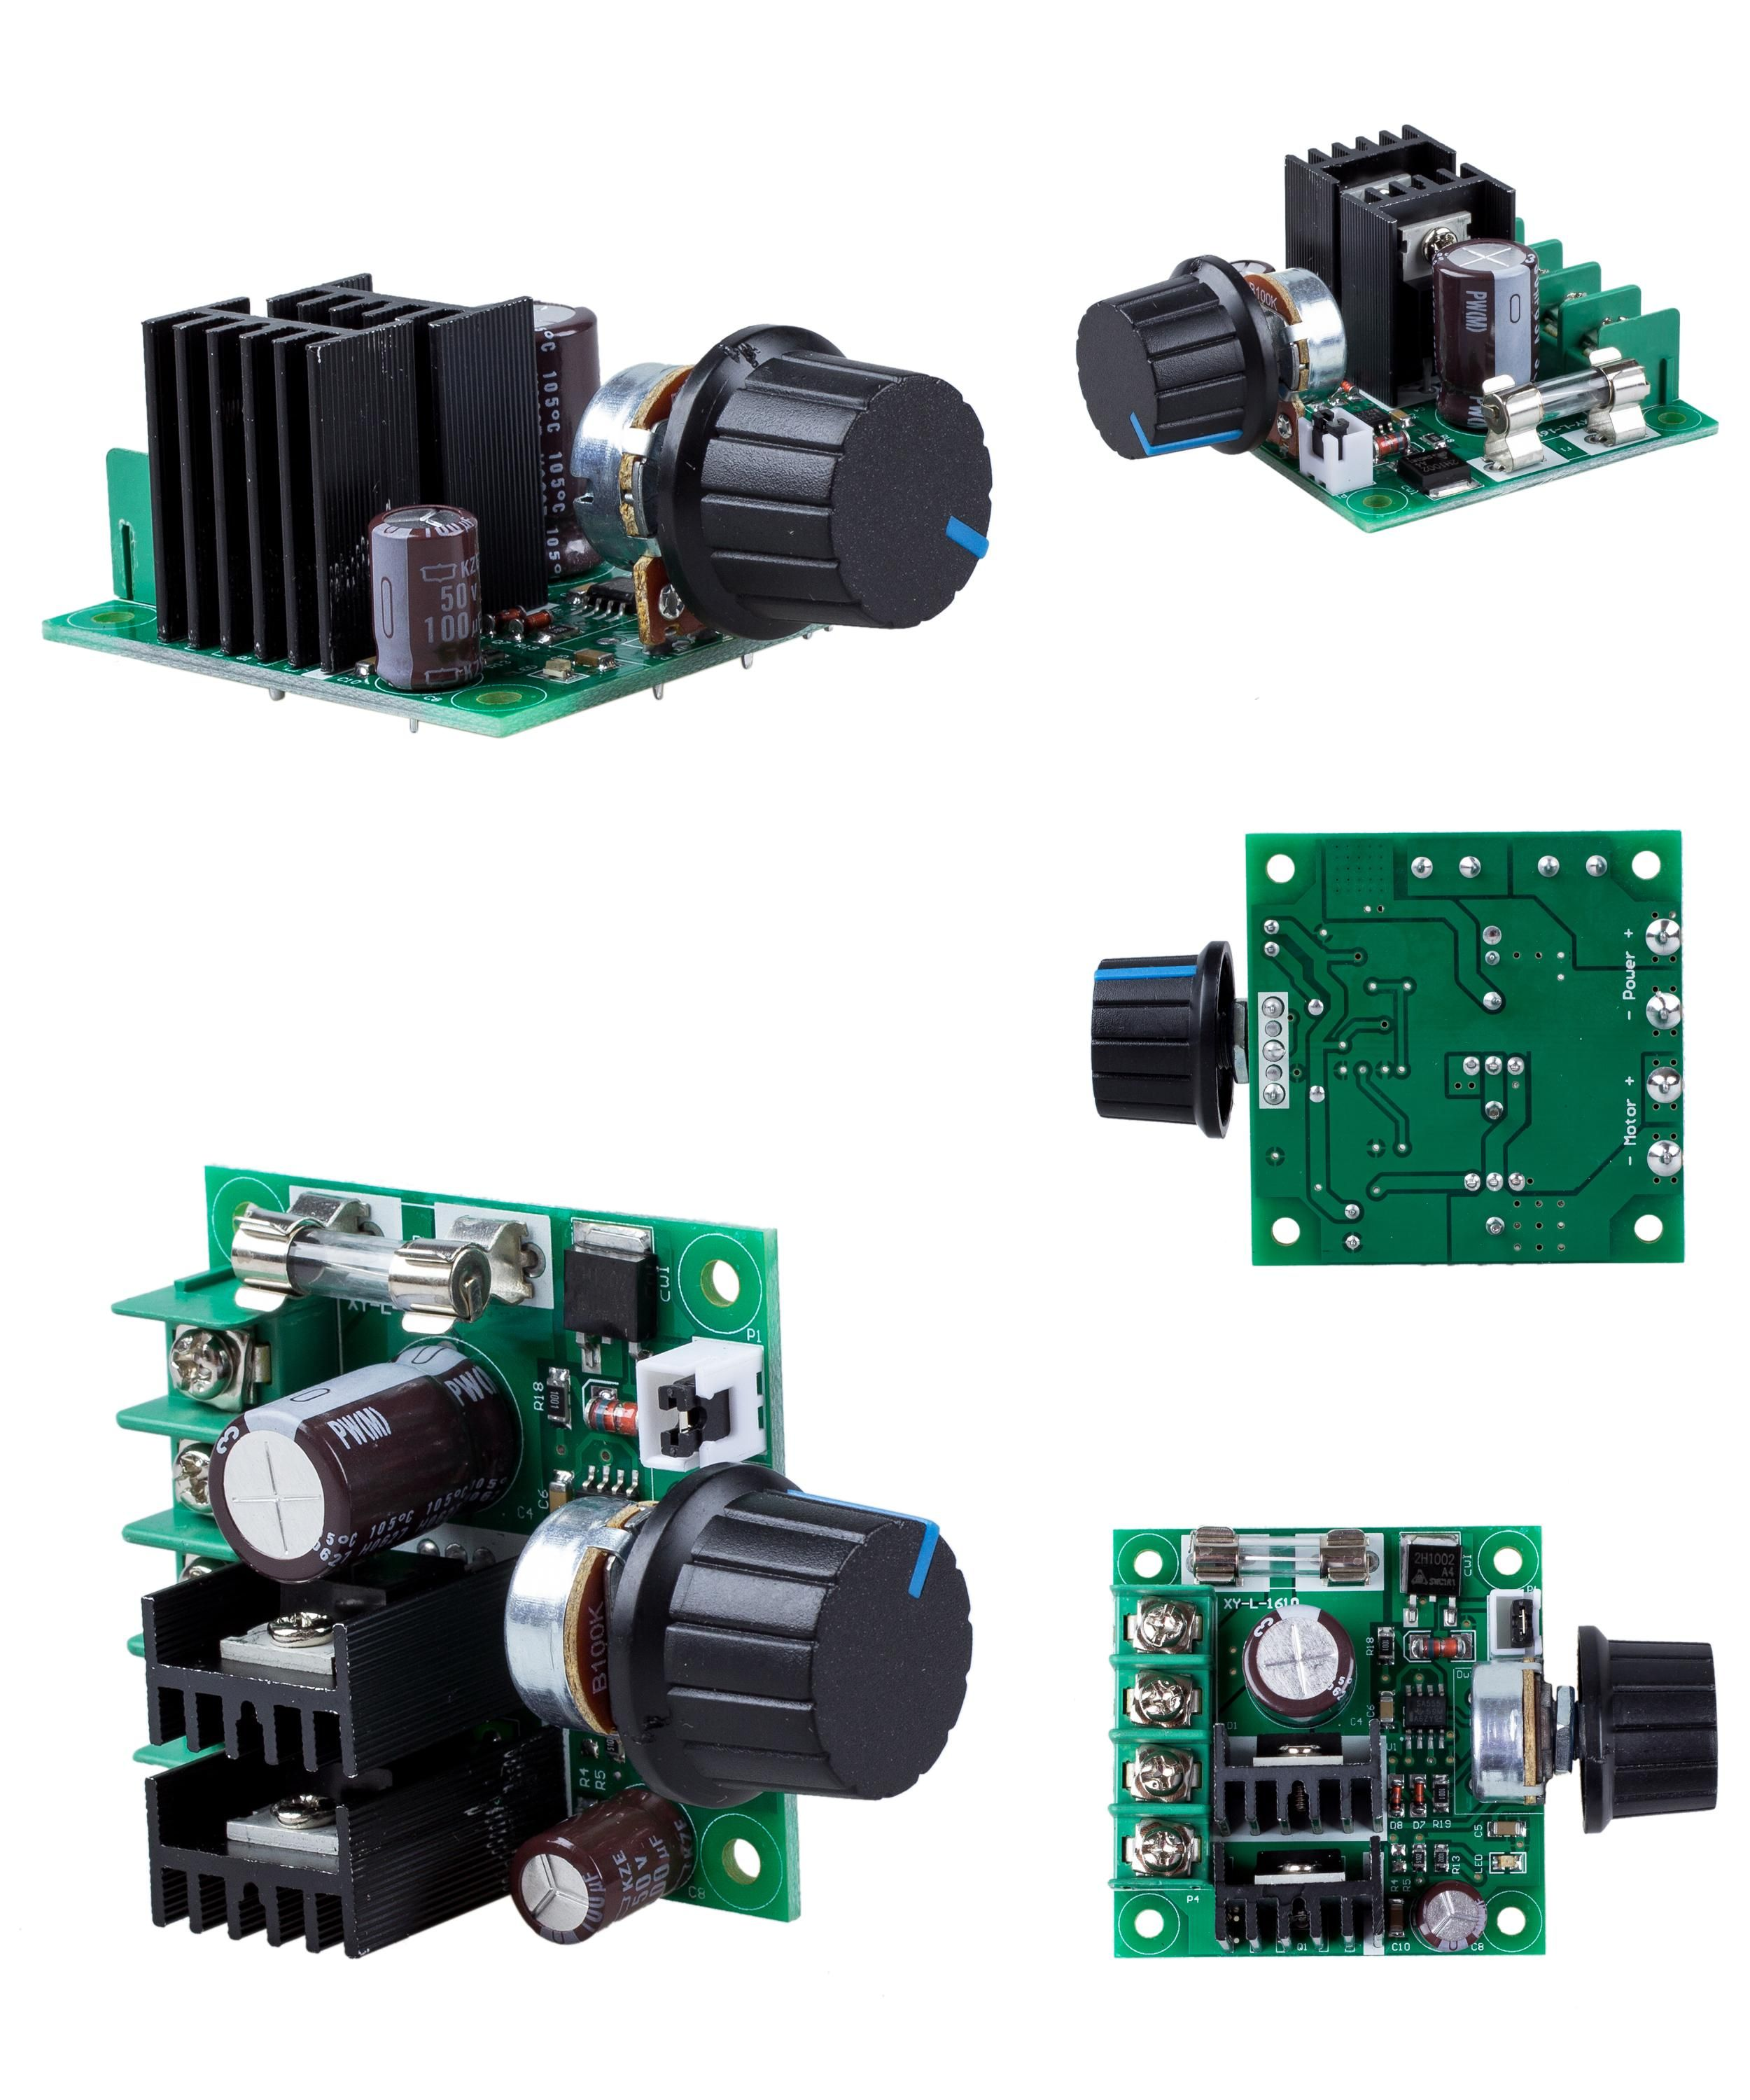 Visit To Buy Jfbl Hot 12v 40v 10a Pwm Dc Motor Speed Controller Circuit With Explanation Electronic